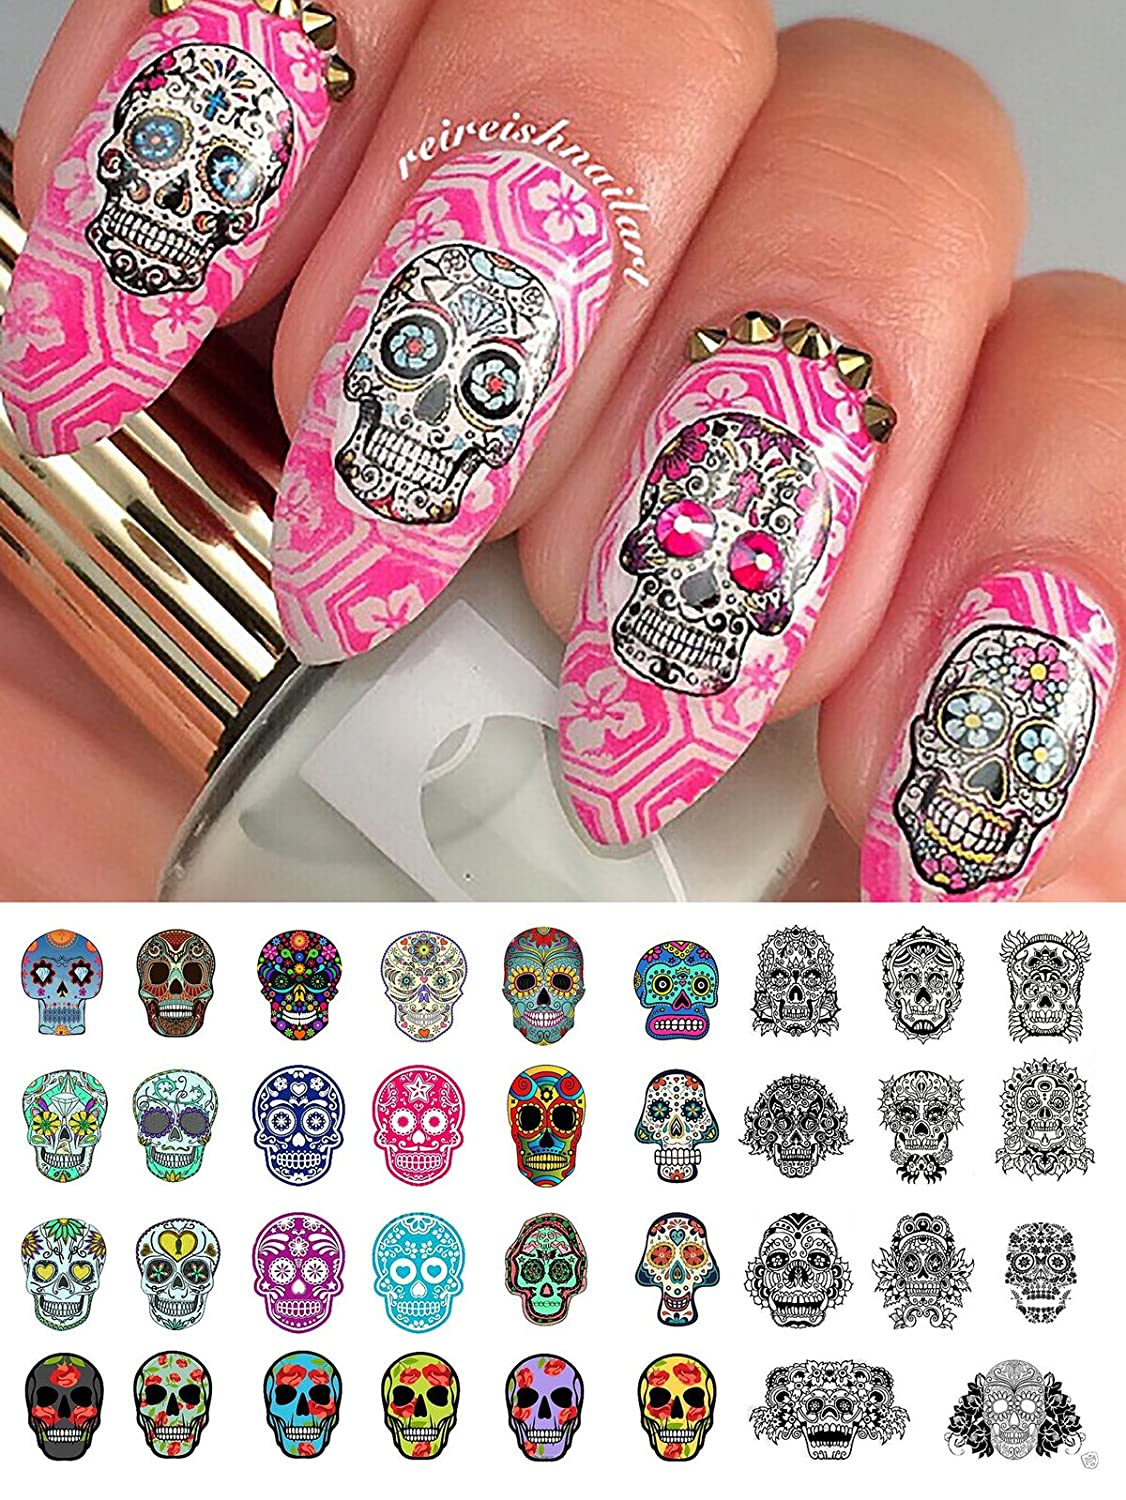 Amazon.com: Sugar Skull Nail Art Day of the Dead Decals Assortment #3 -  Featured in Rachael Ray Magazine October 2014!: Beauty - Amazon.com: Sugar Skull Nail Art Day Of The Dead Decals Assortment